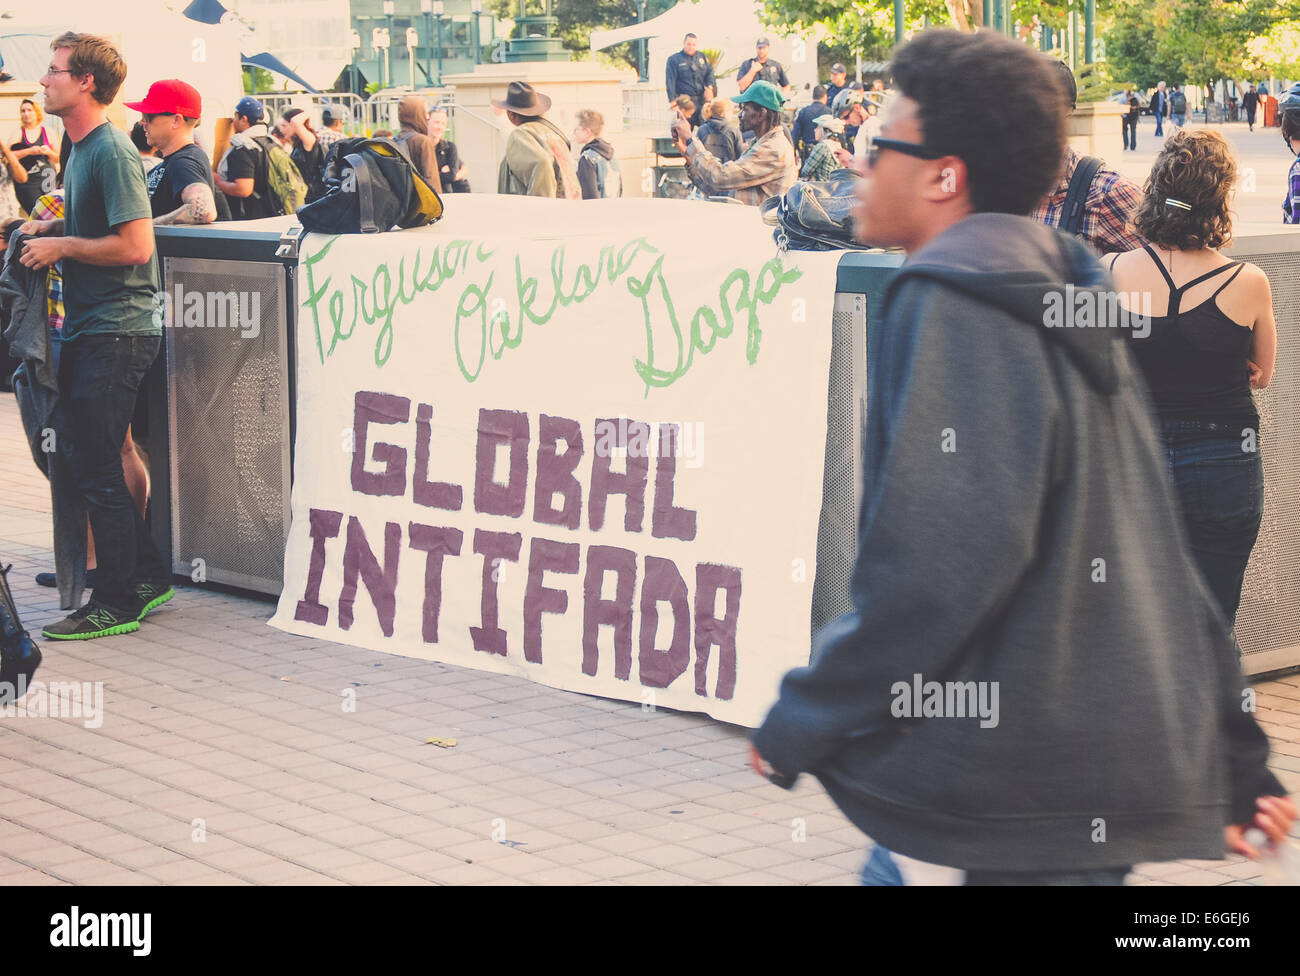 At a protest in Oakland protesters gather around a sign in solidarity with the Palestinian people. - Stock Image